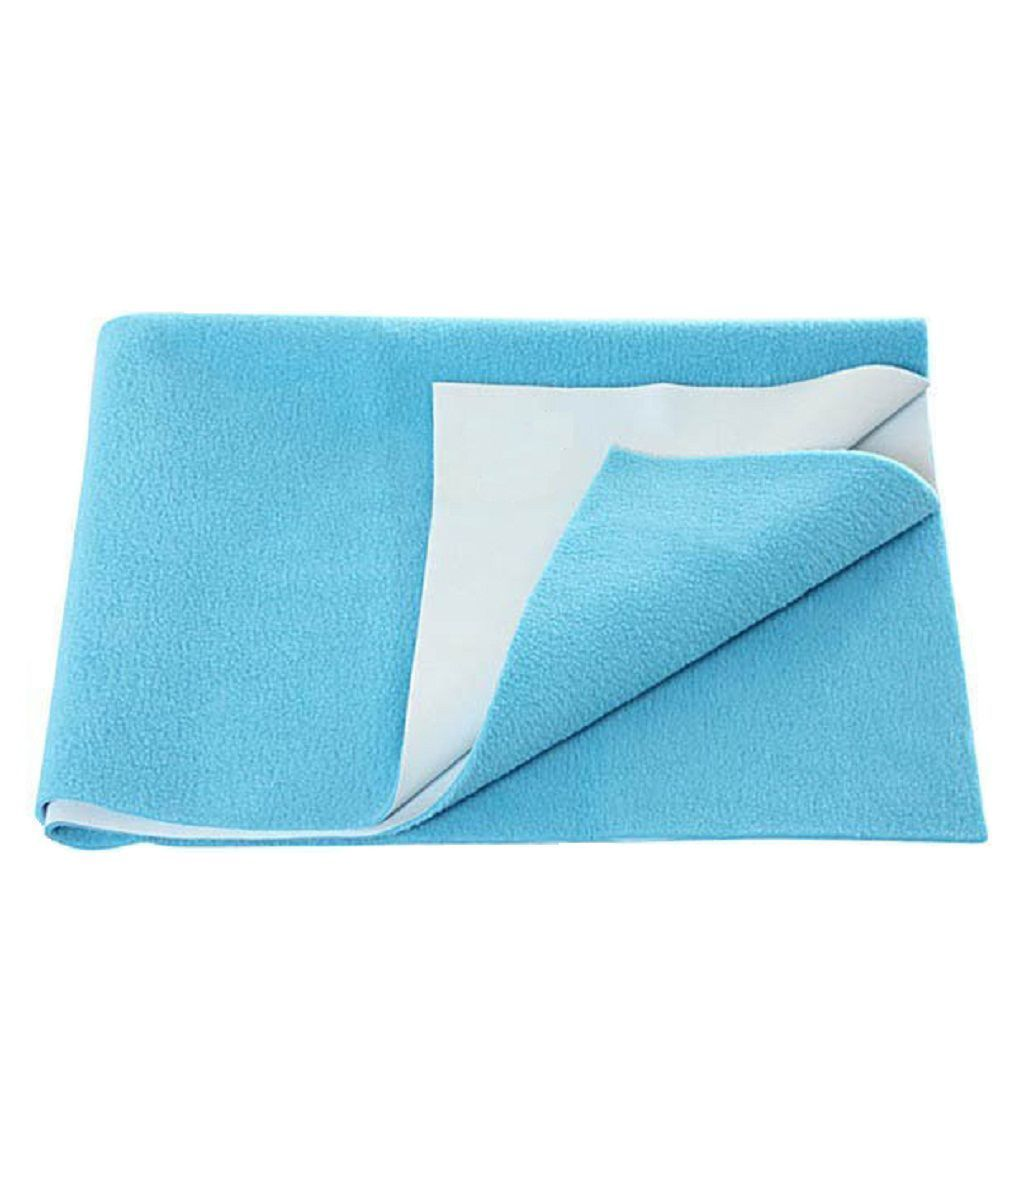 "Kuber Industriesâ""¢ Waterproof Baby Bed Protector, Dry Sheet, Reusable Mat Large Size 100*70 Cm (Sky Blue) KI07024"